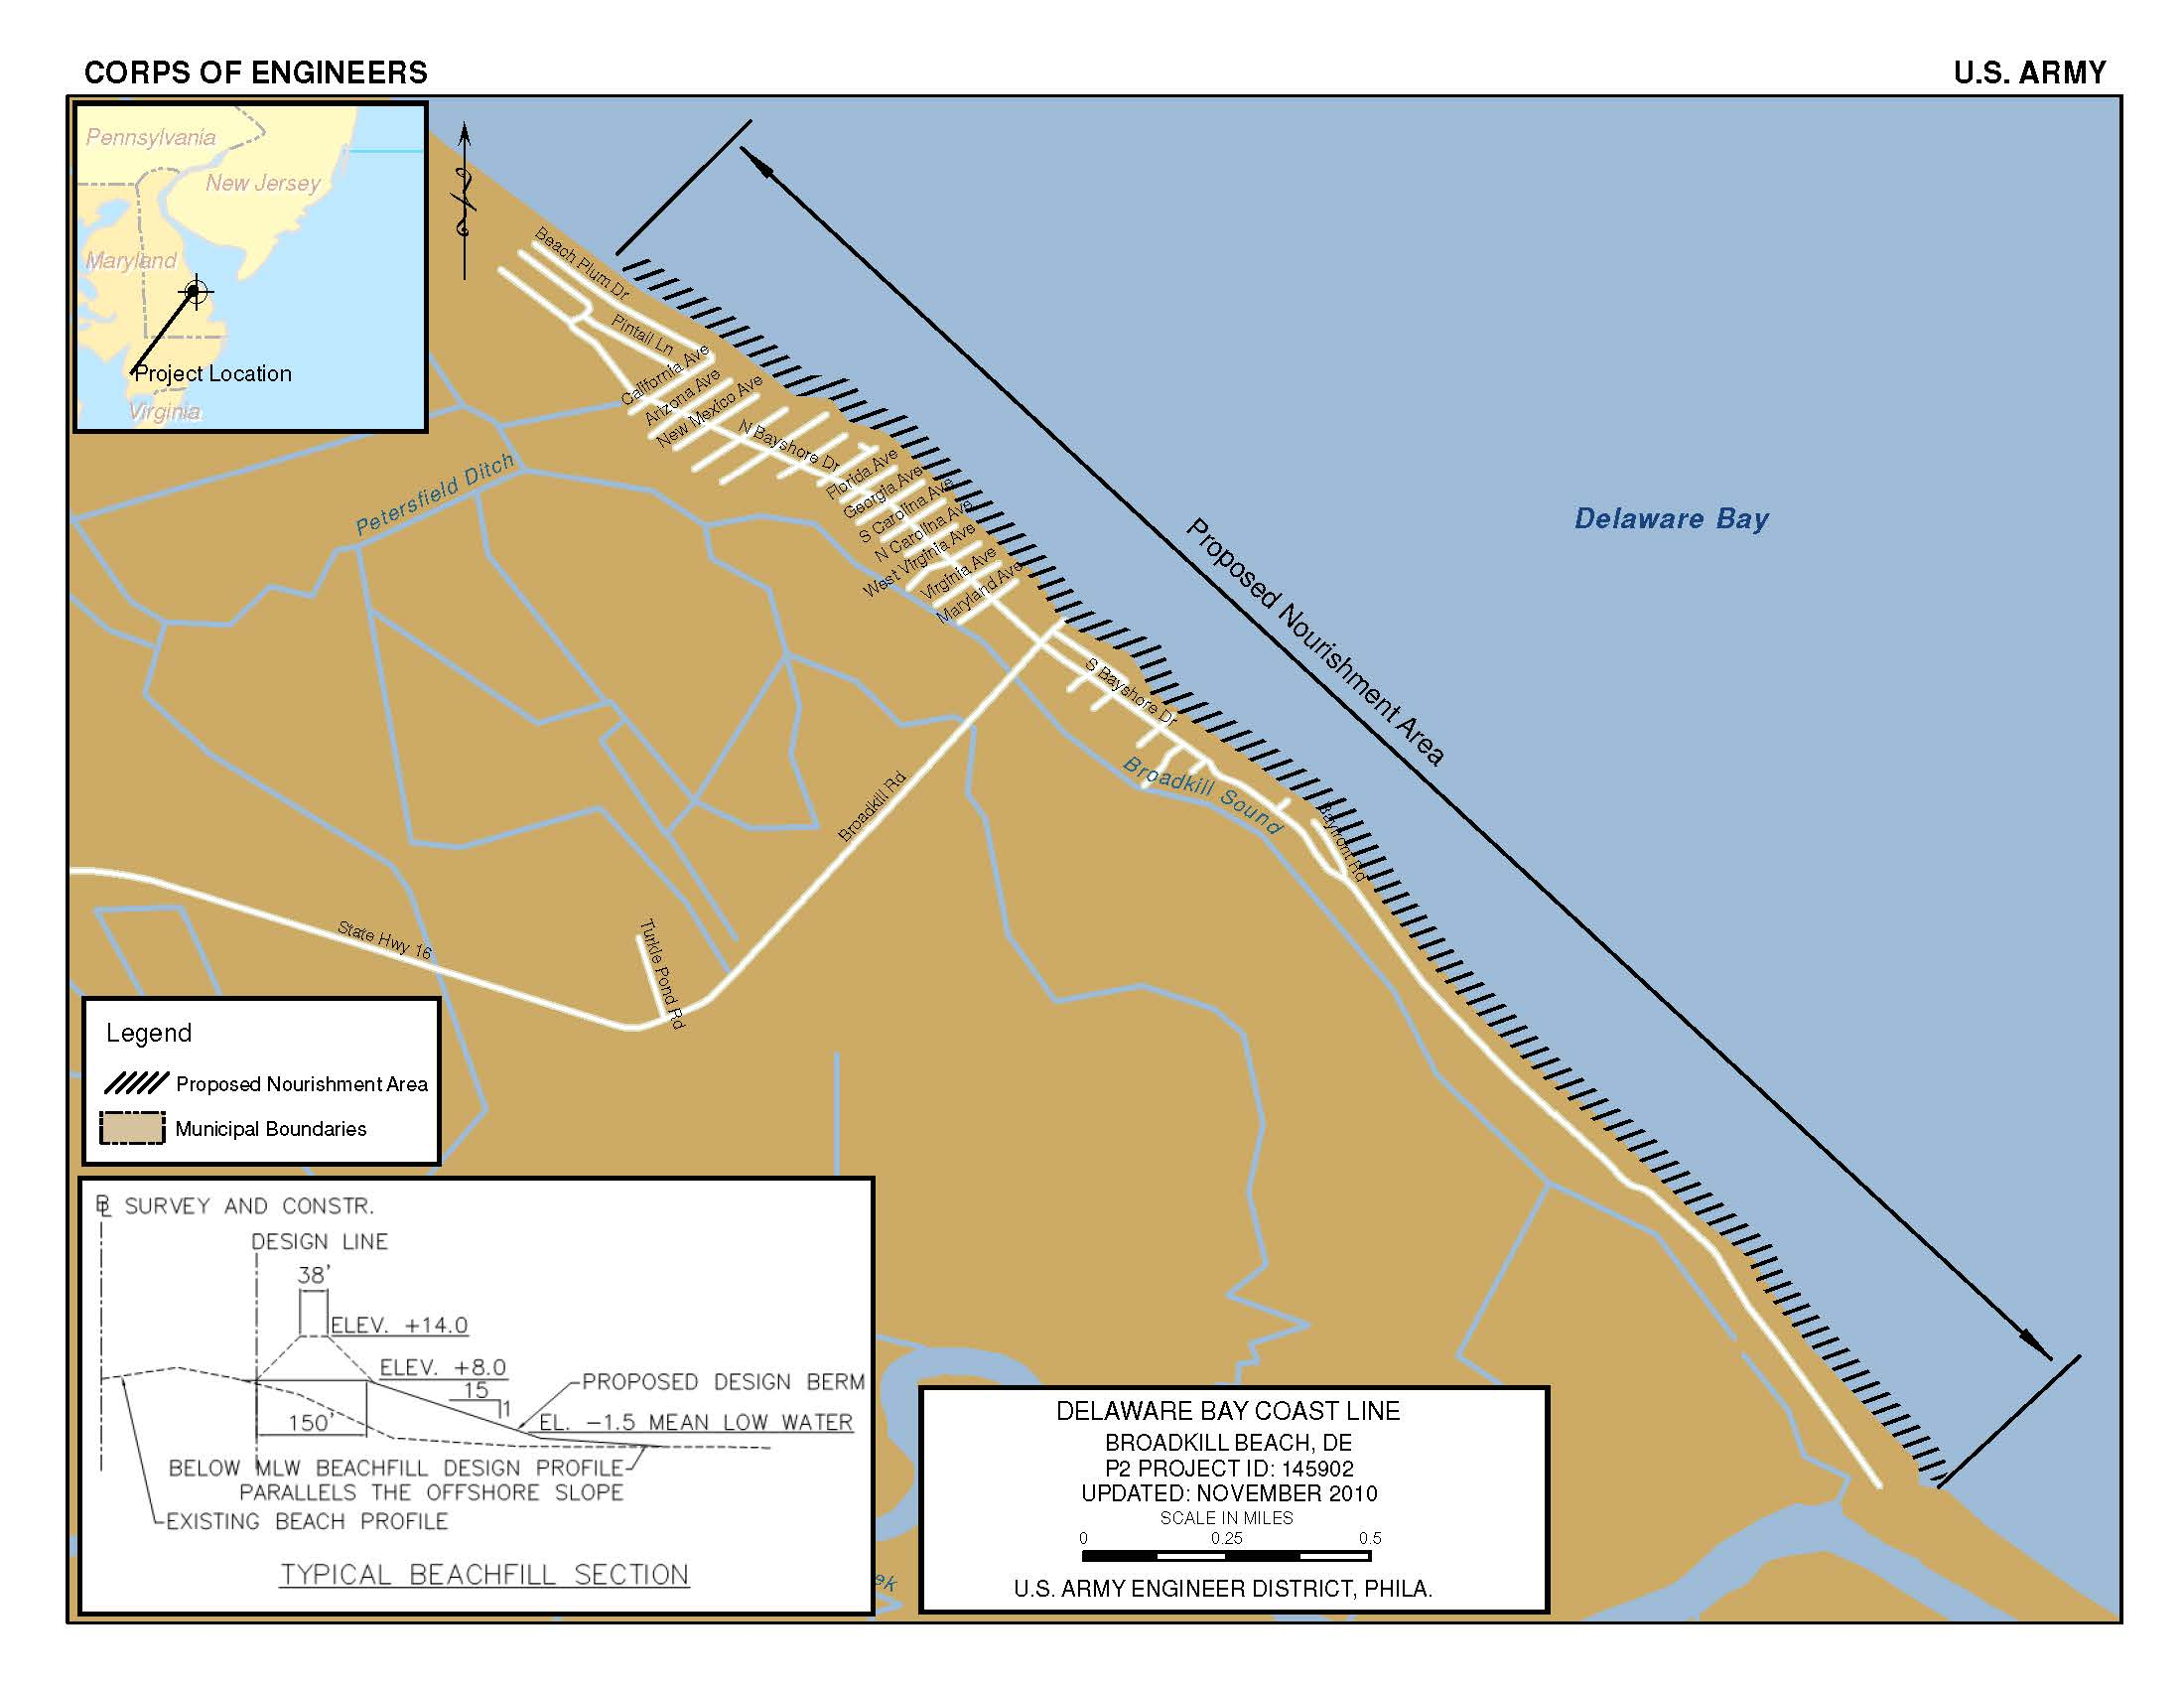 Delaware Bay Coastline Broadkill Beach De Philadelphia District